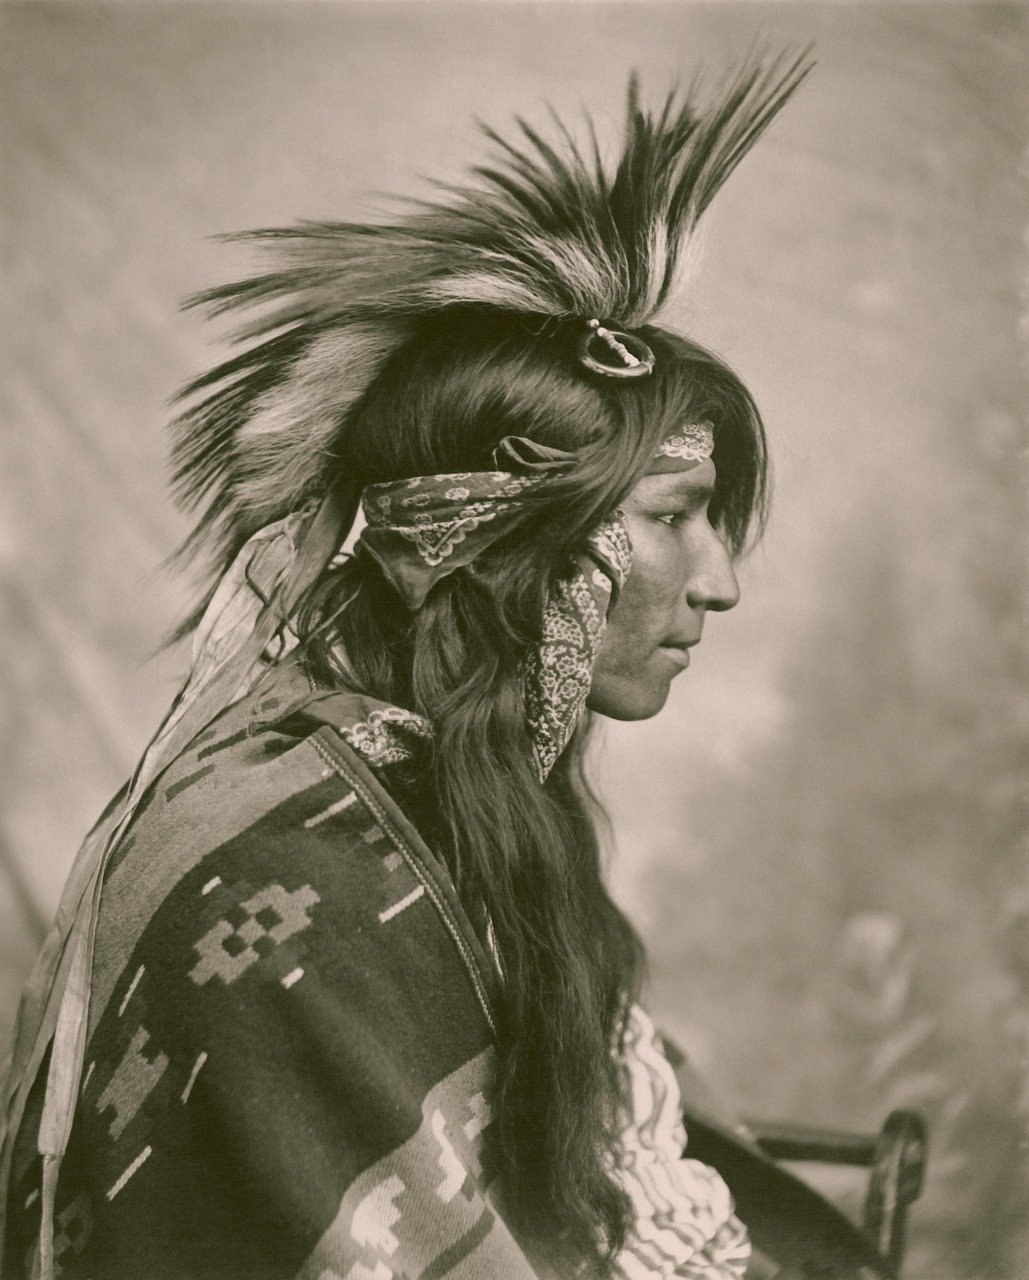 First Nation Native Indian_Cree tribe_PD